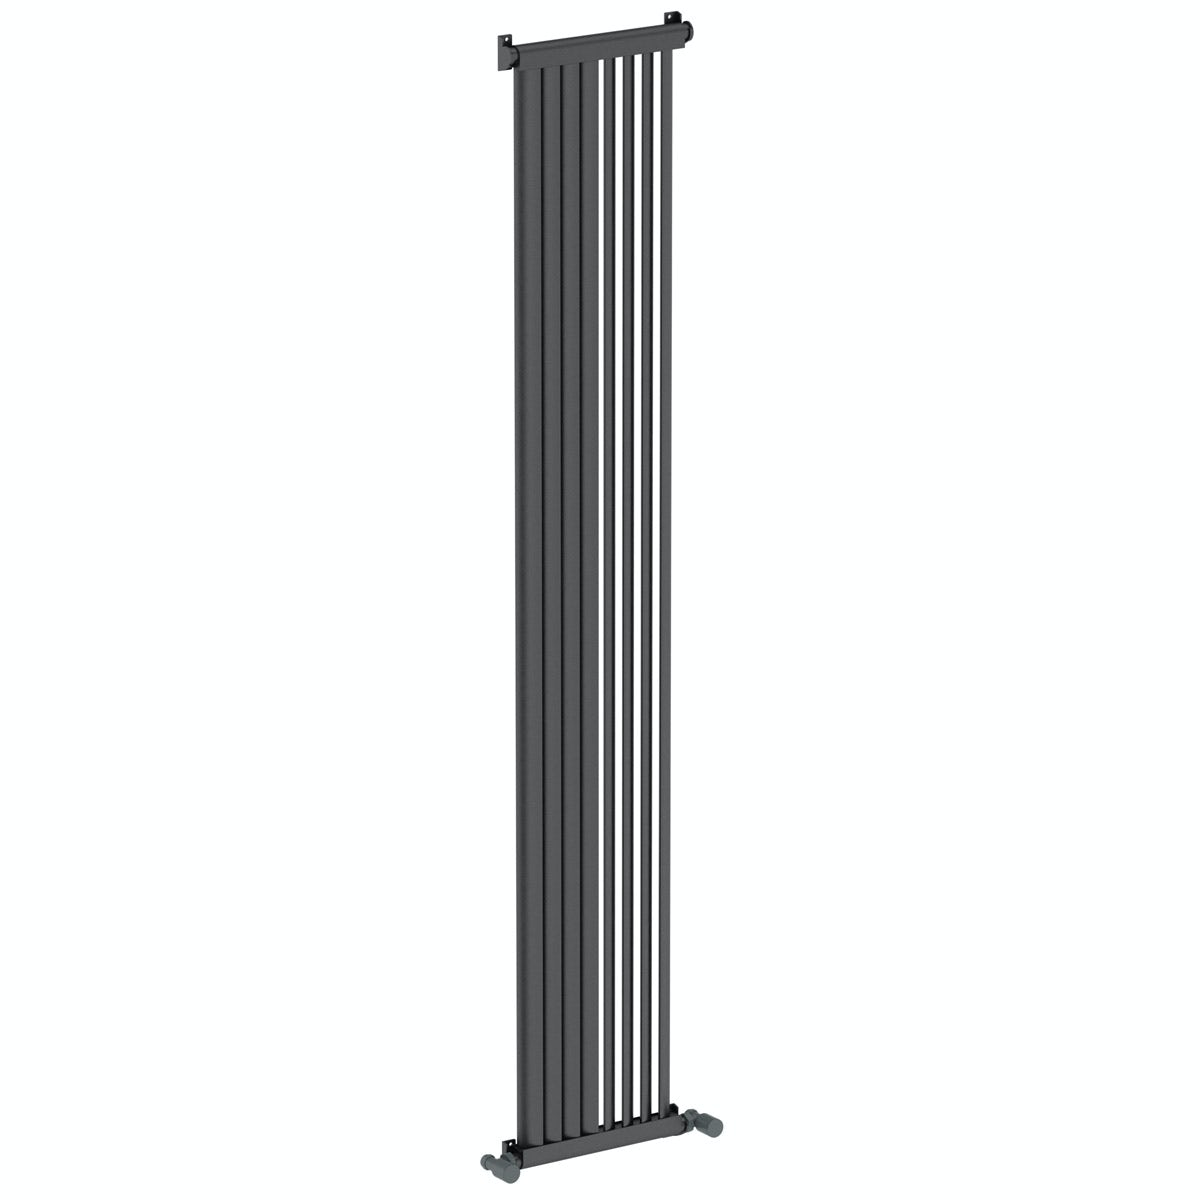 Mode Zephyra anthracite vertical radiator 1800 x 328